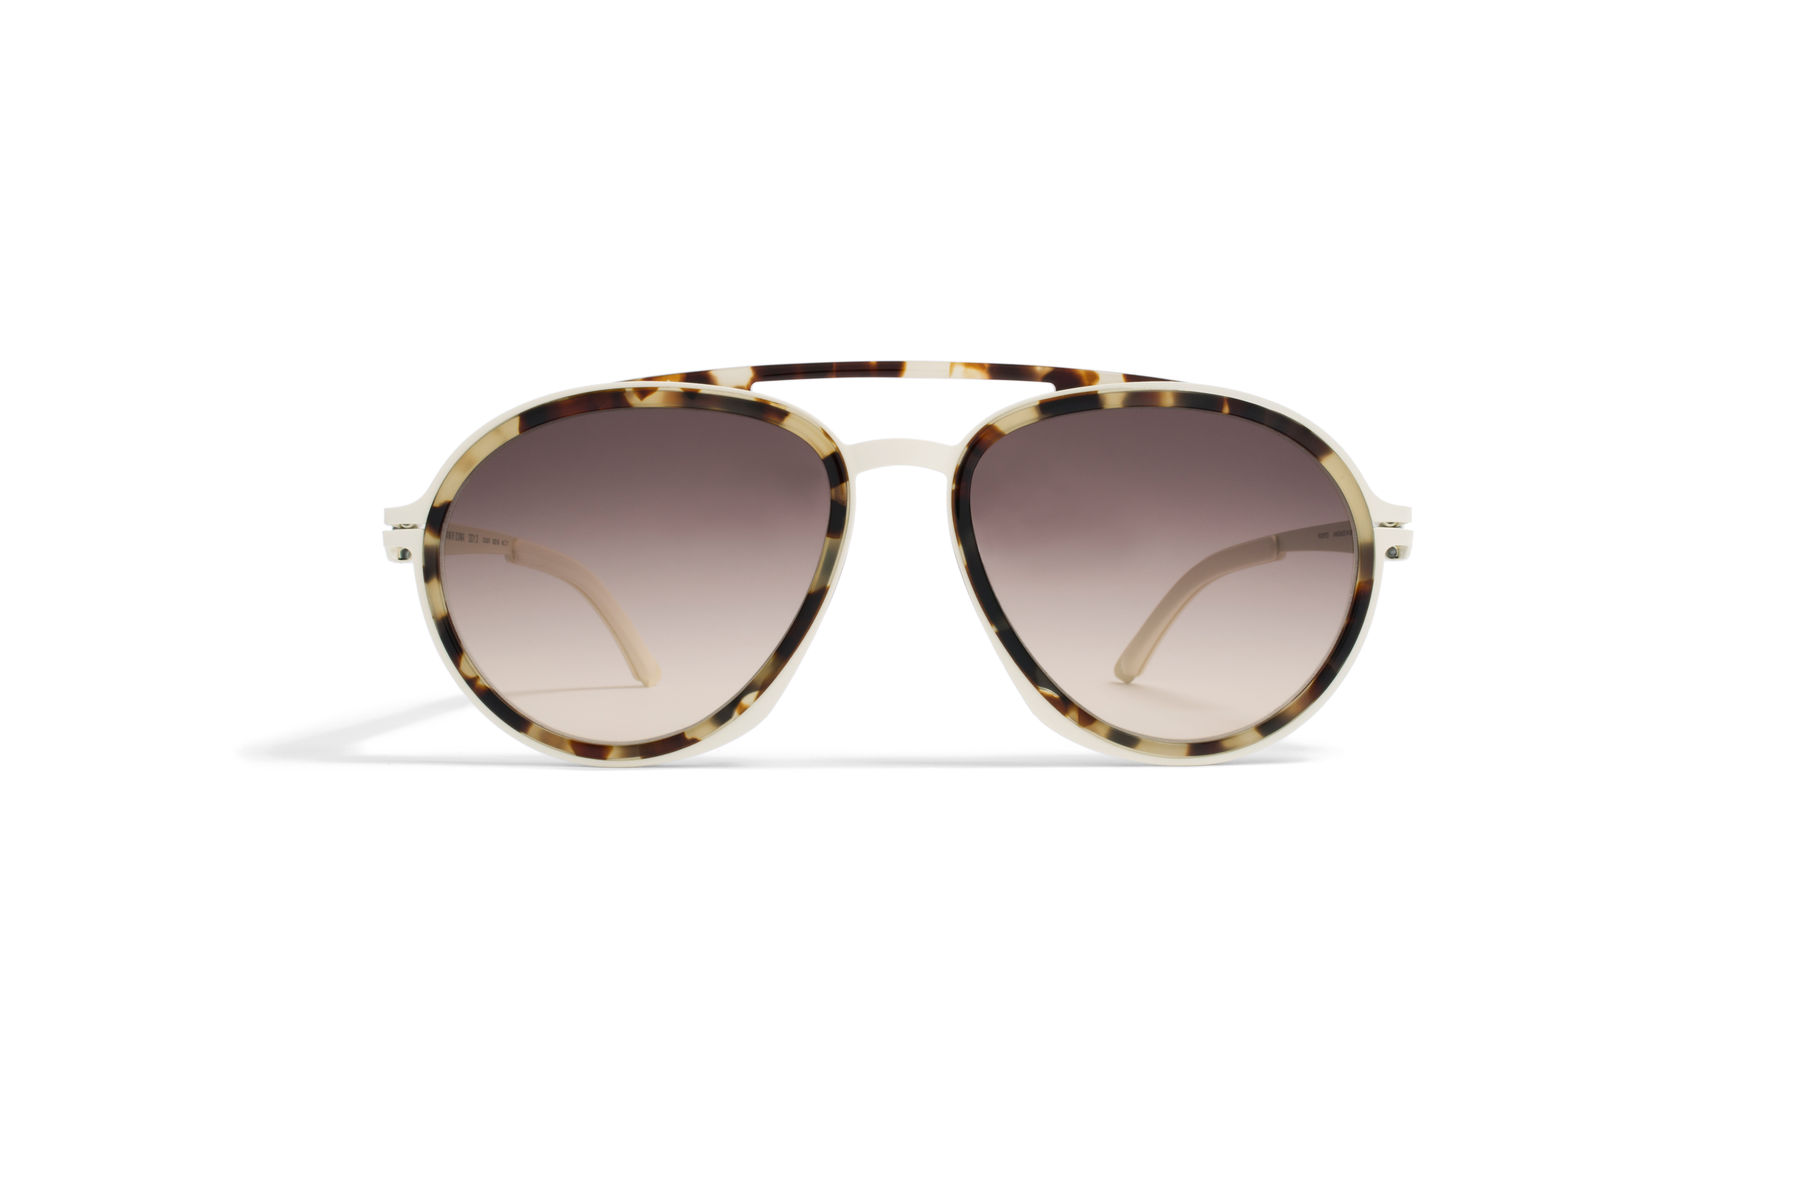 MYKITA - DAMIR DOMA / DD1.3 / Frame: A7 Off White/Chocolate Chips Lens: Brown/Brown Gradient